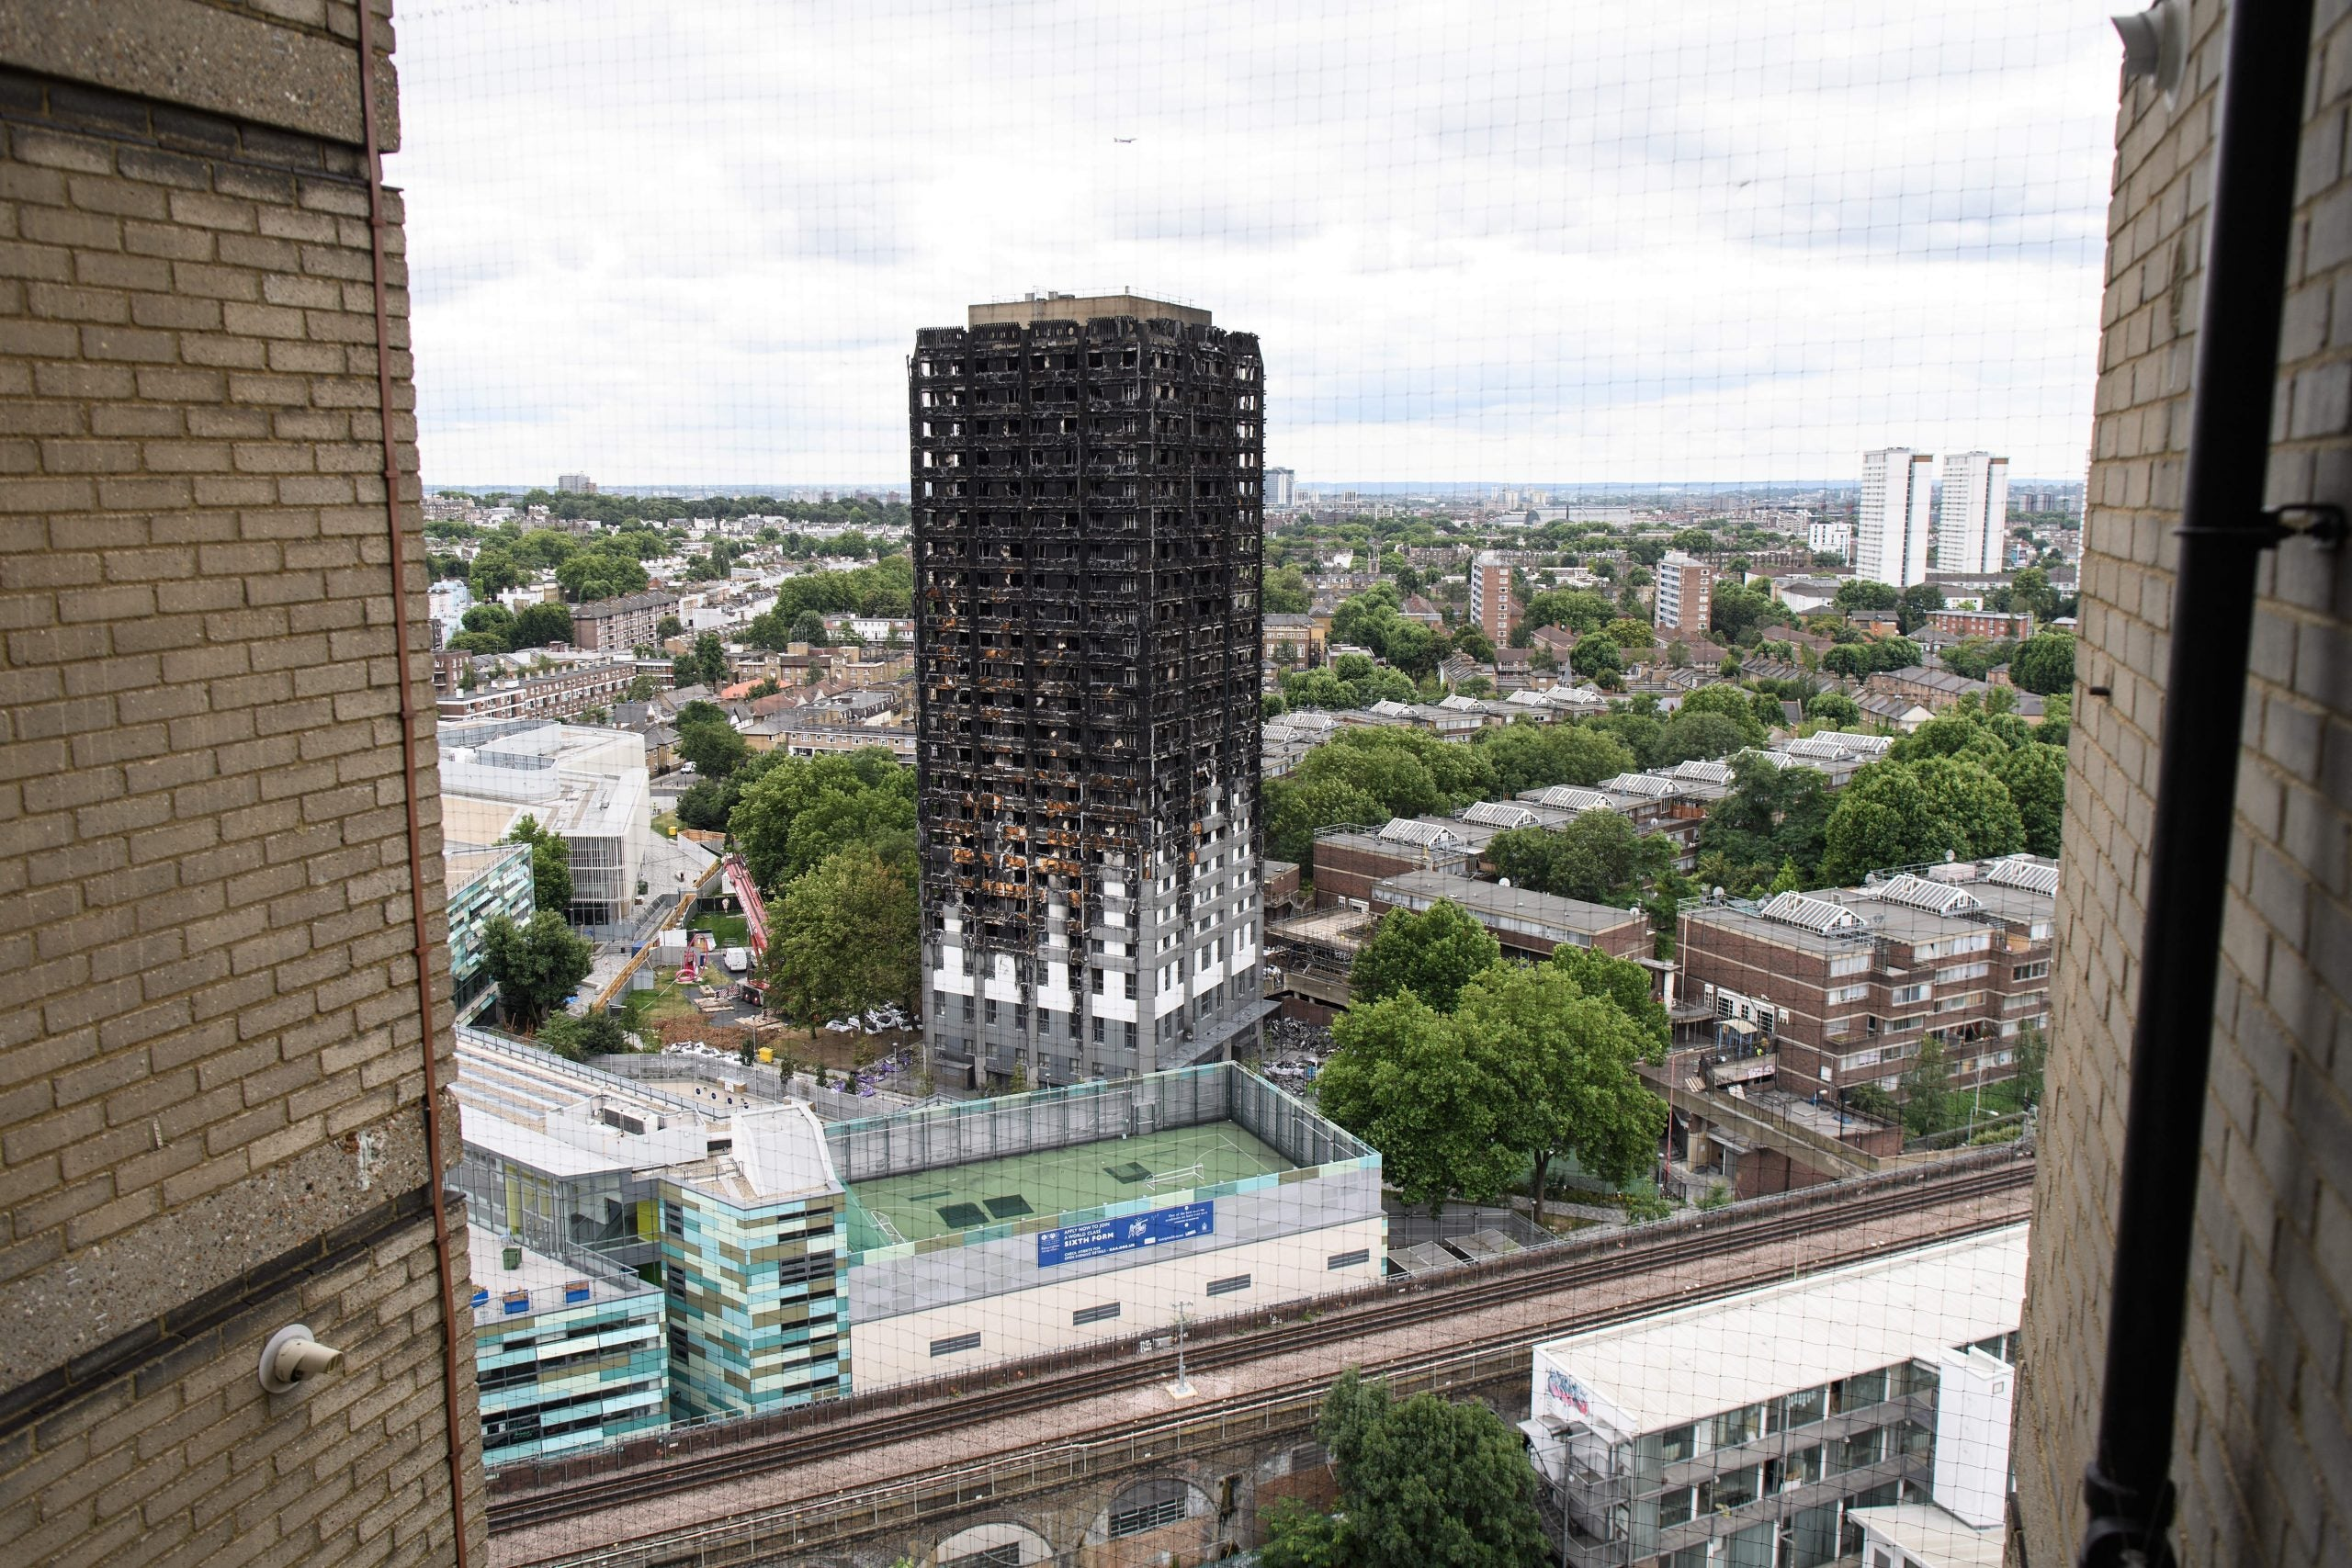 The next challenge for Grenfell survivors - bidding on a council house